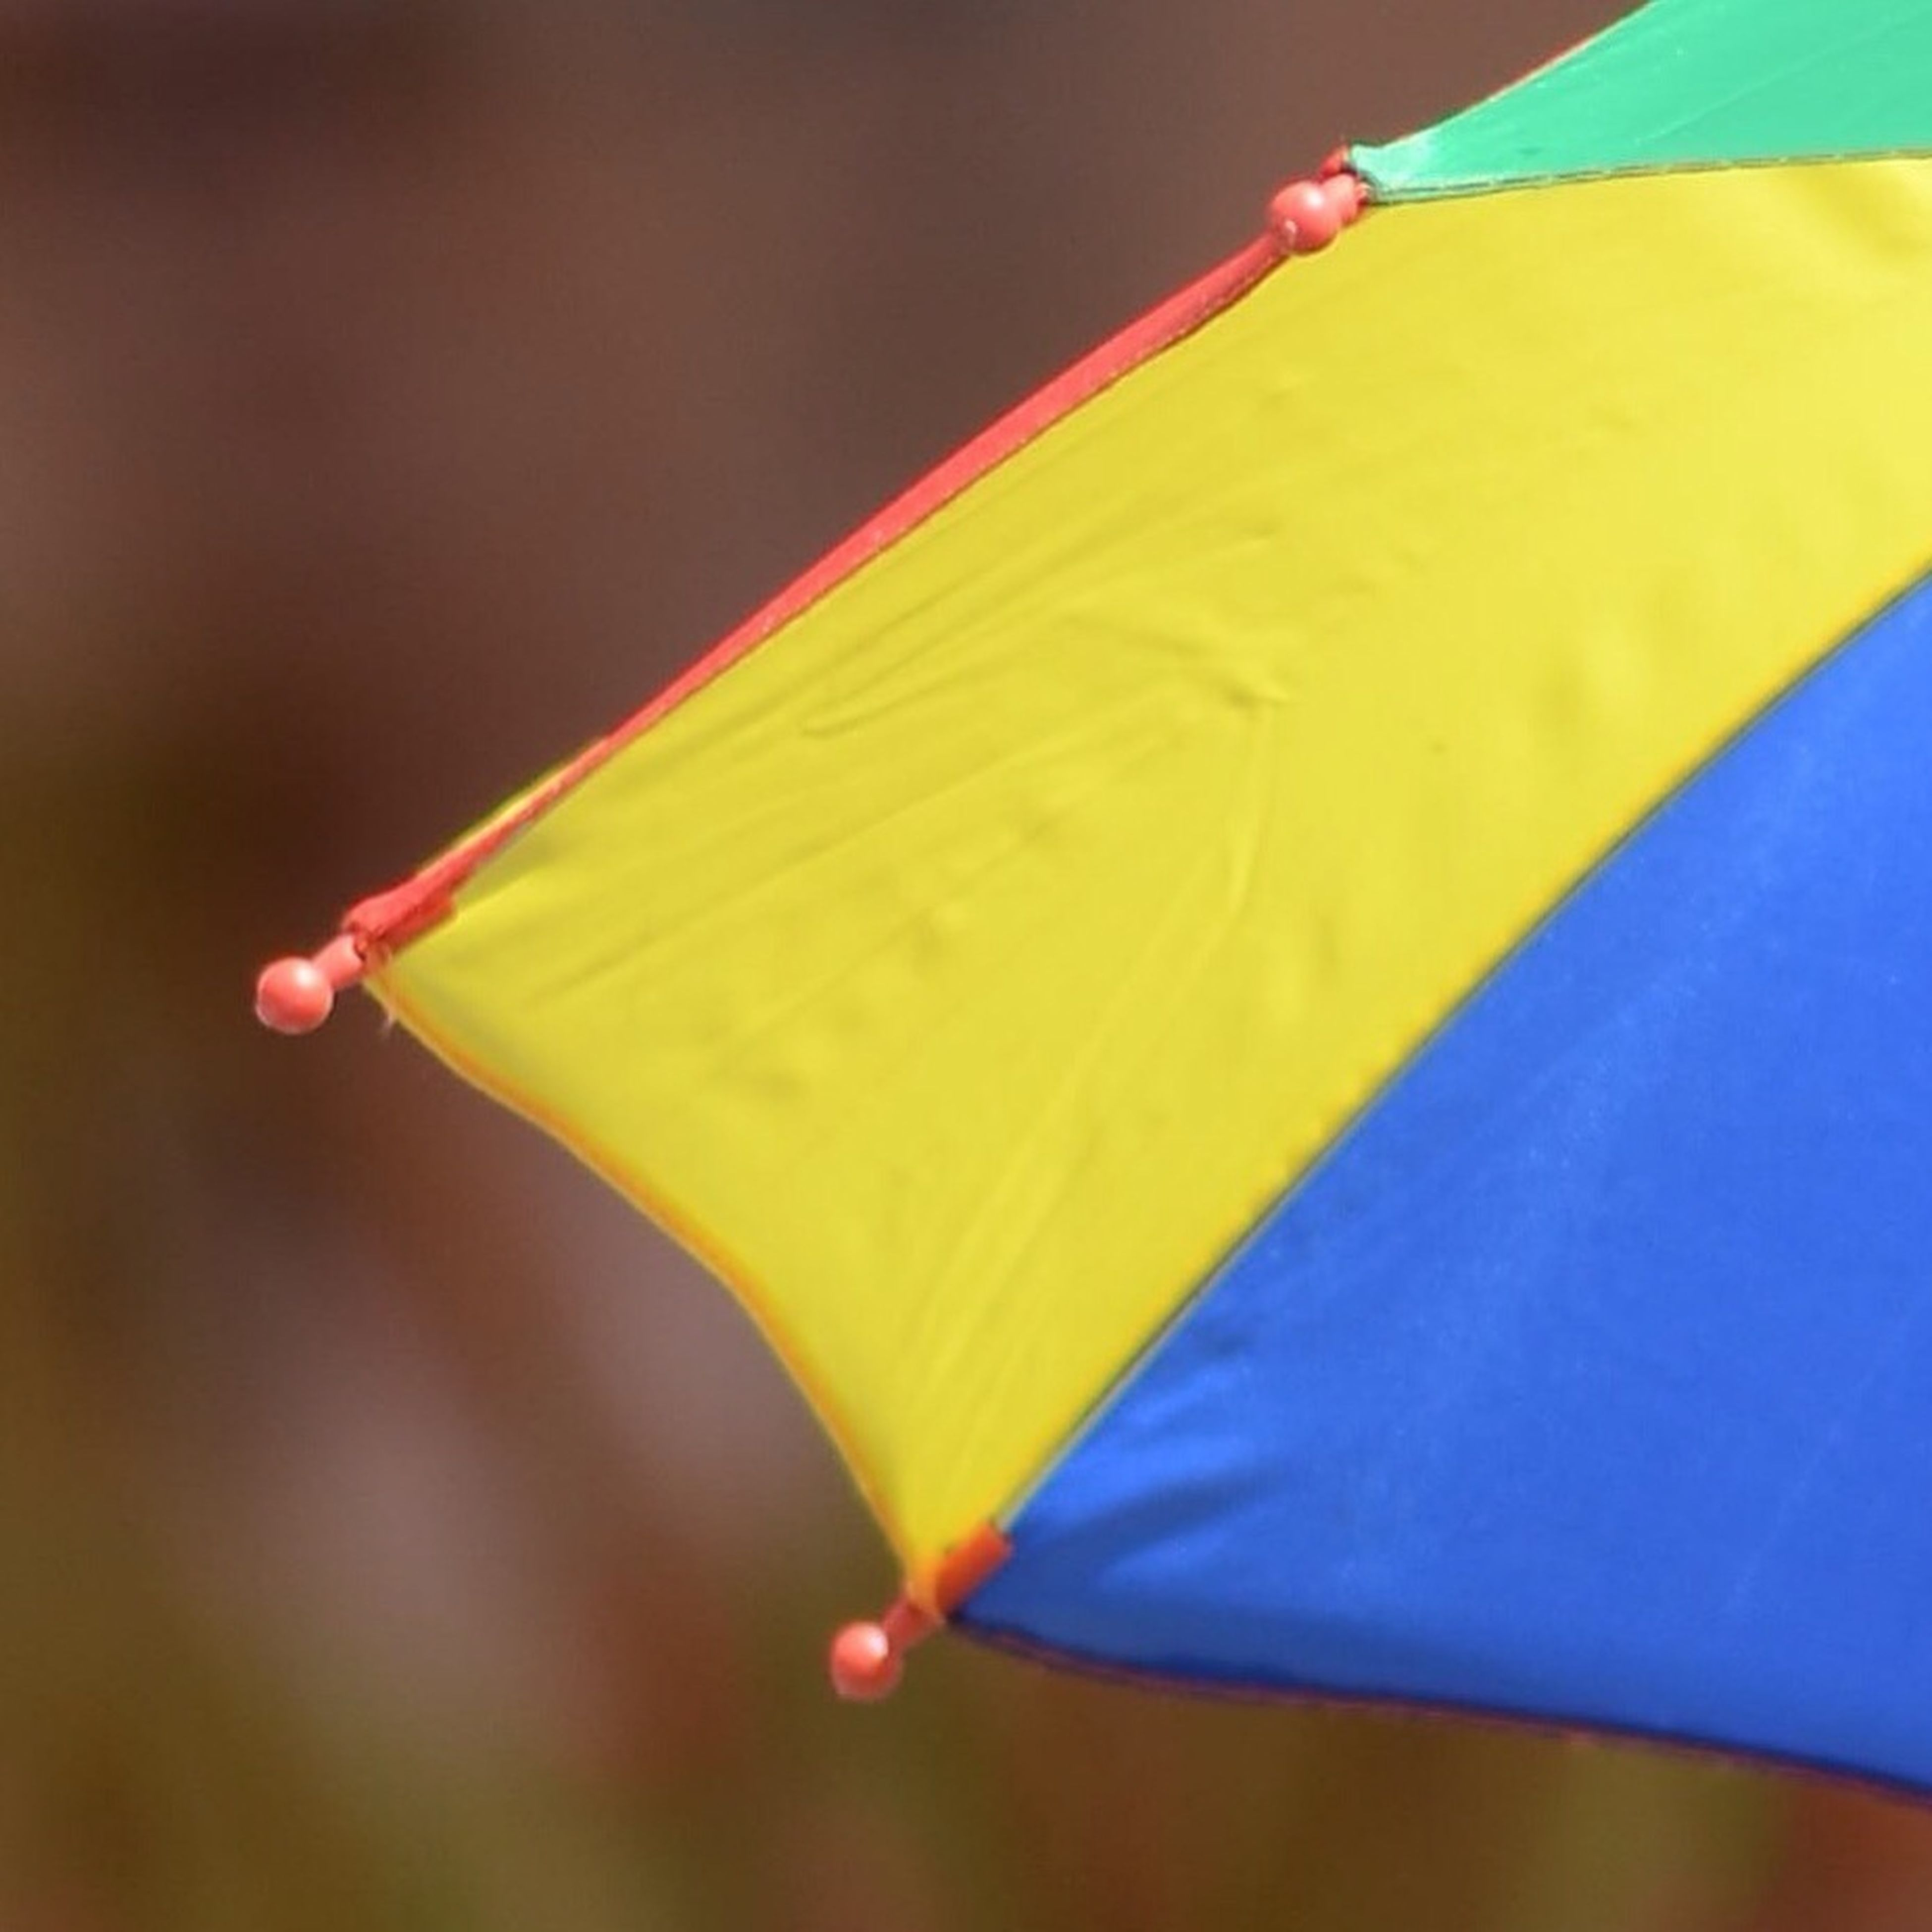 yellow, close-up, focus on foreground, multi colored, selective focus, blue, part of, day, outdoors, no people, colorful, fragility, single object, nature, umbrella, leaf, cropped, detail, vibrant color, green color